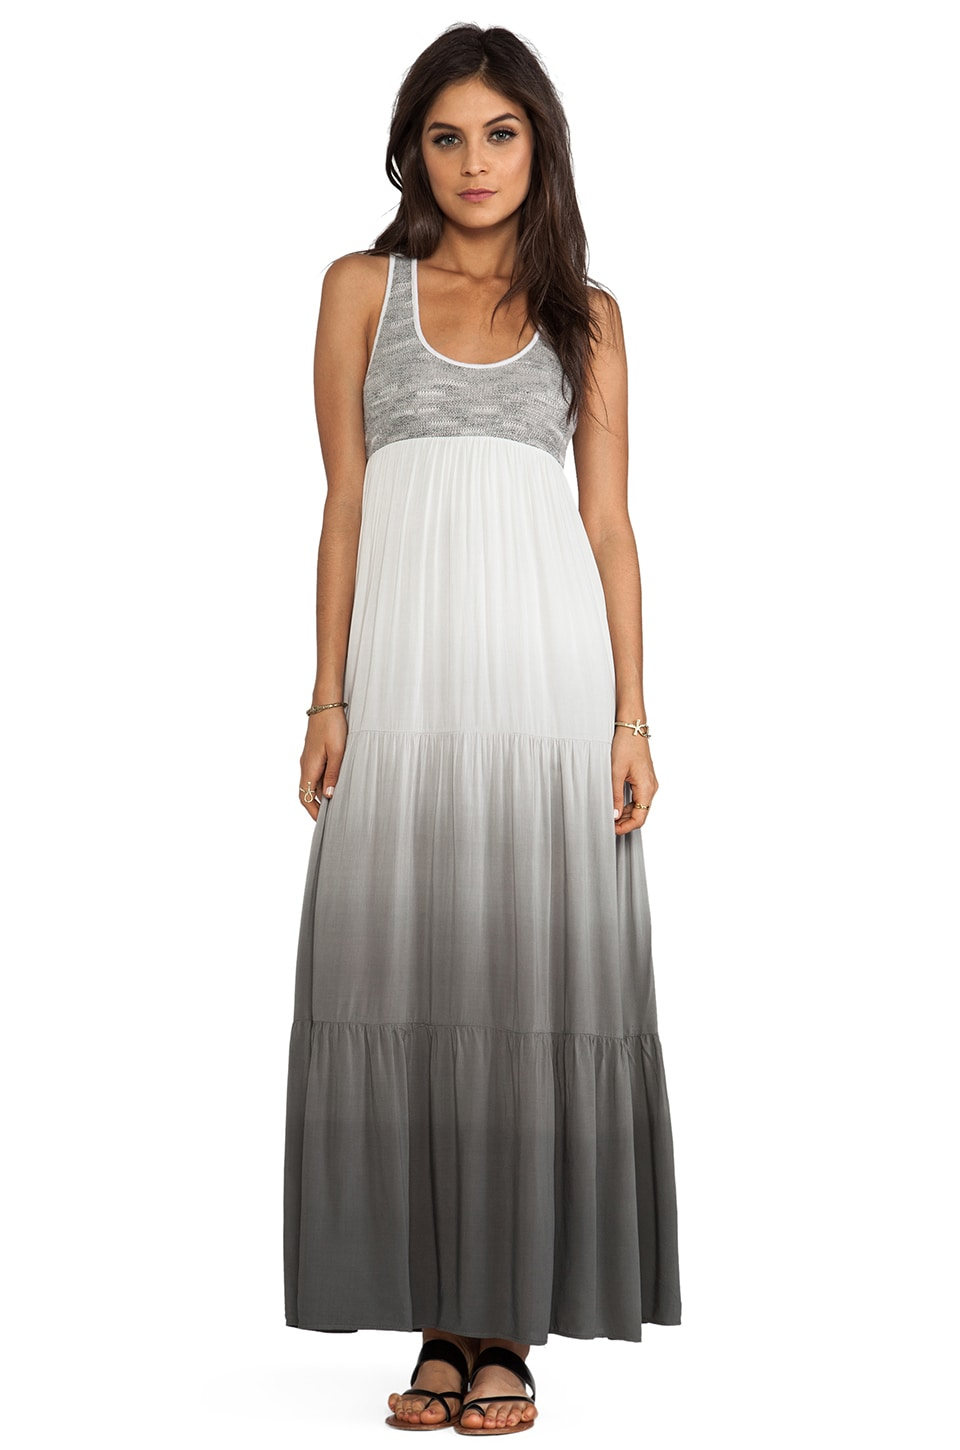 WOODLEIGH Blayke Ombre Maxi Dress in Charcoal